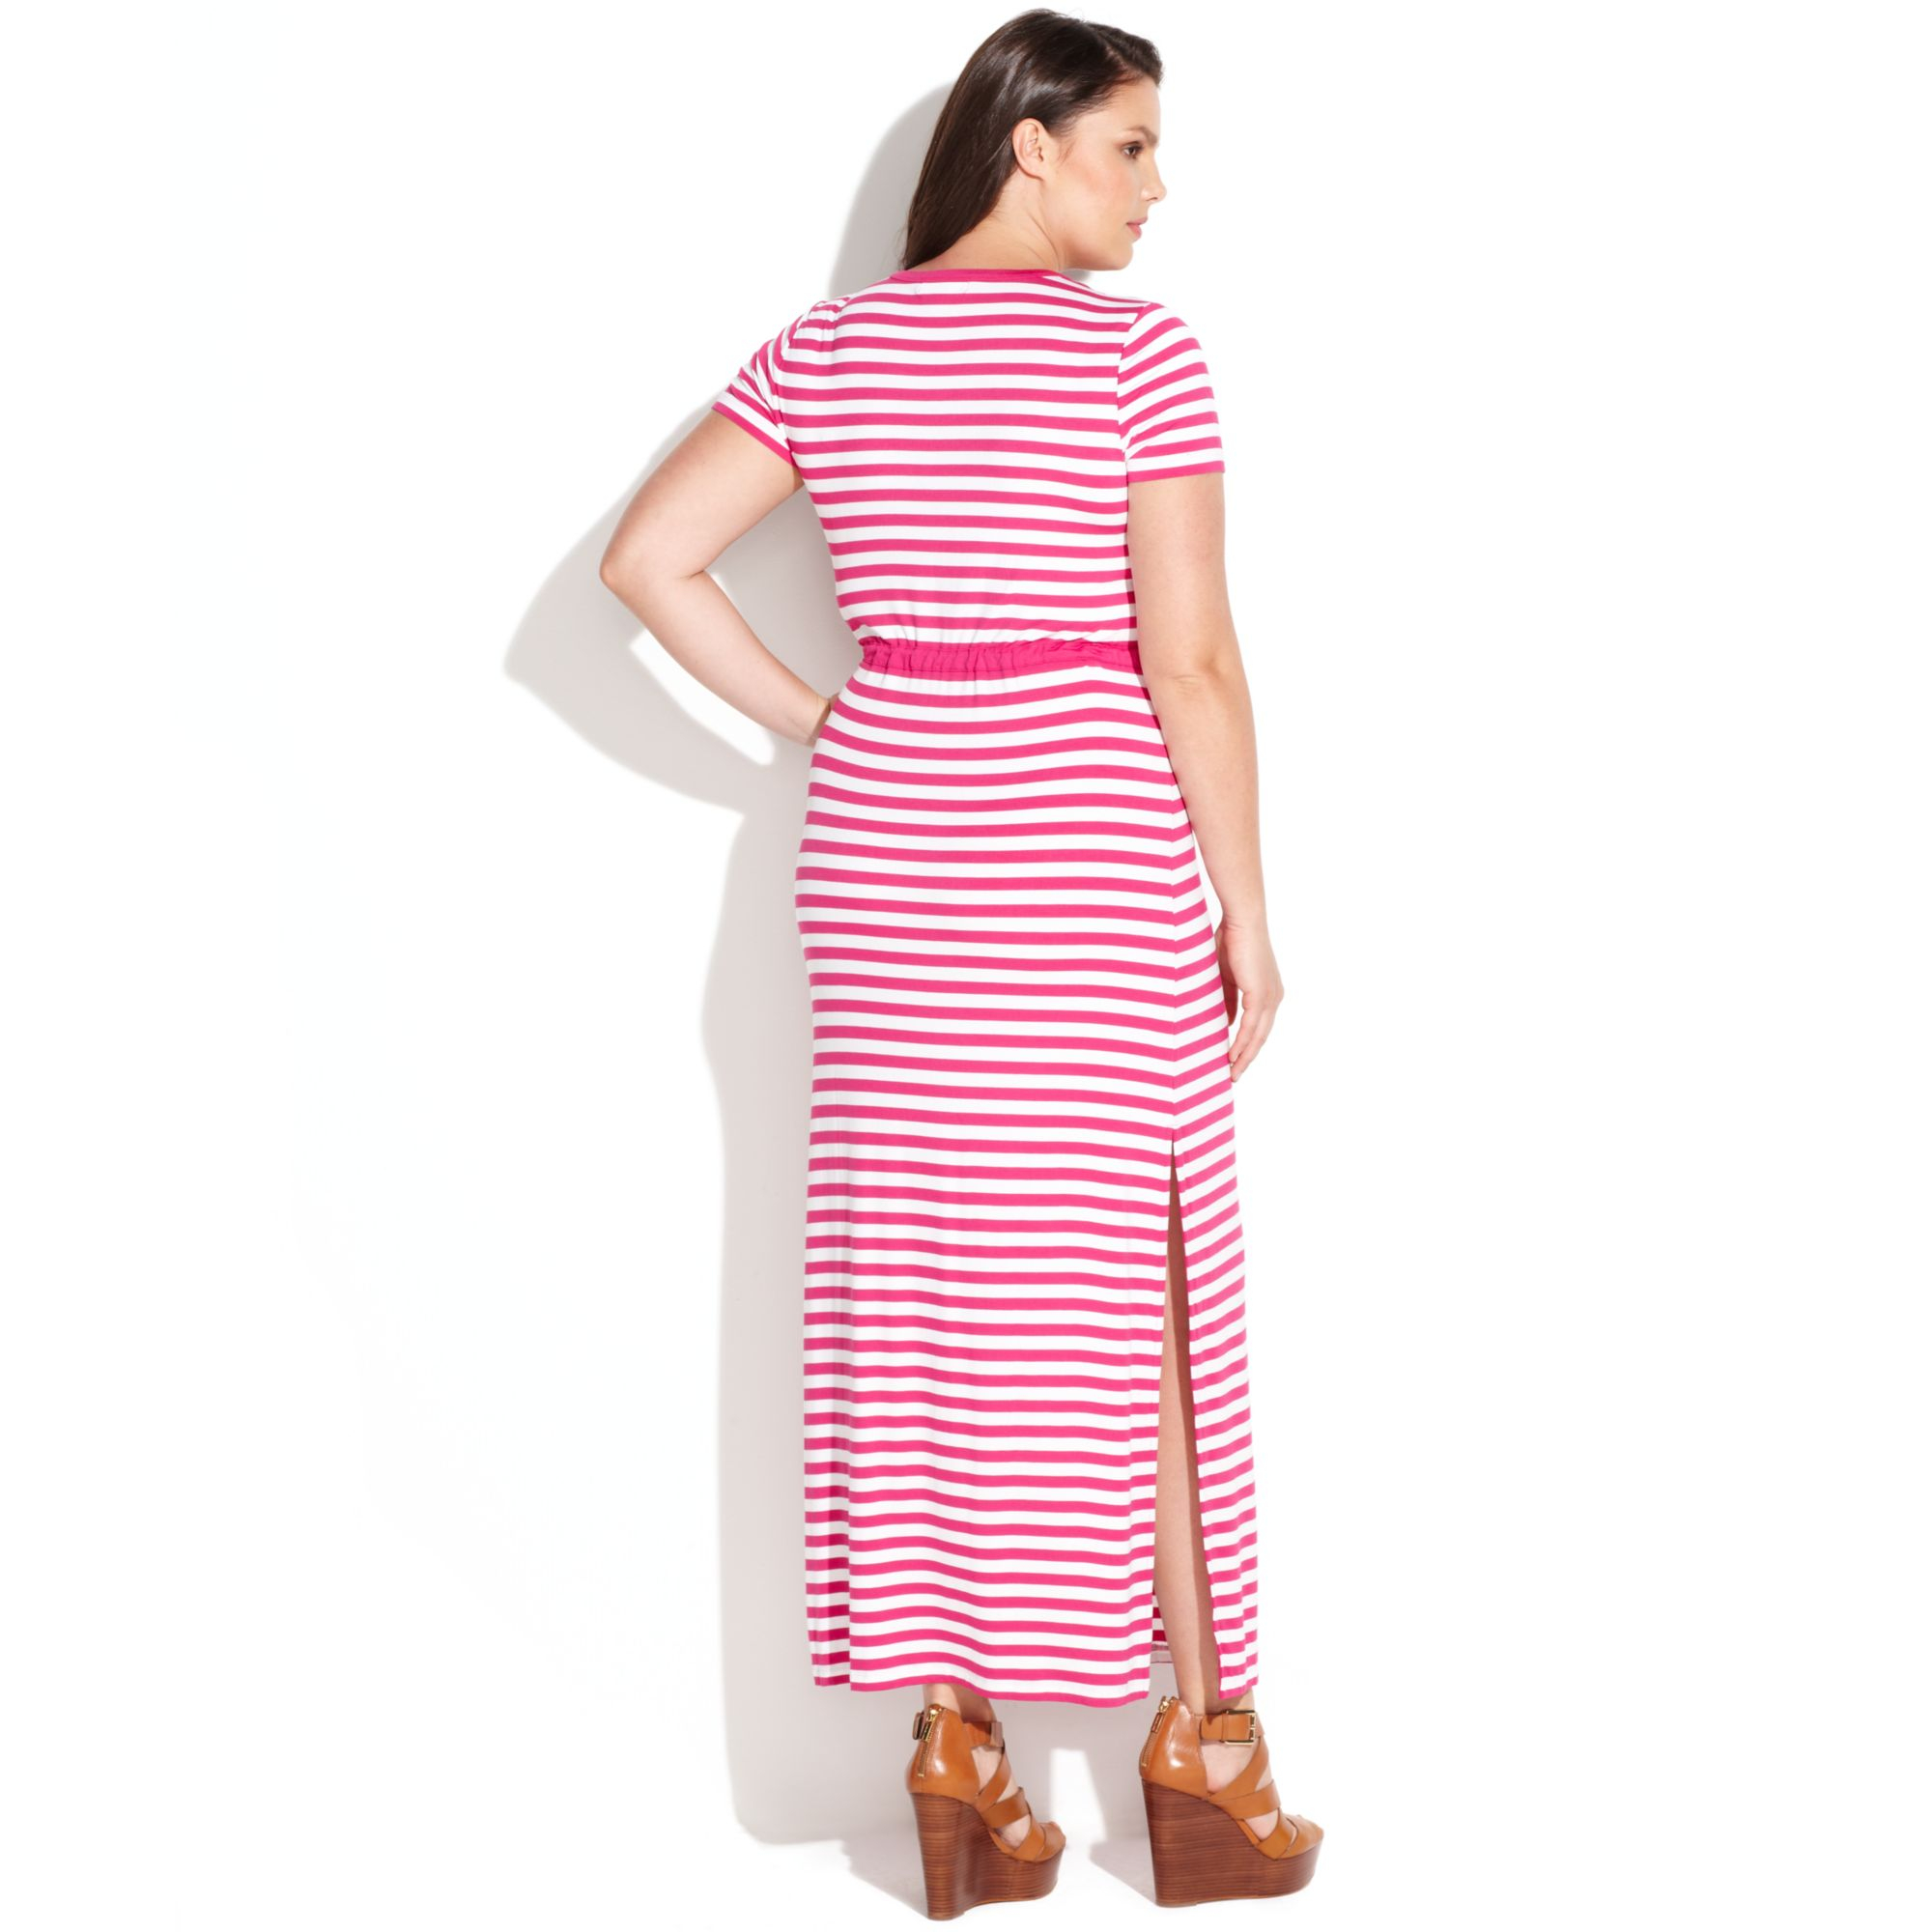 f20cde94660 Lyst - Michael Kors Plus Size Short Sleeve Striped Maxi Dress in White